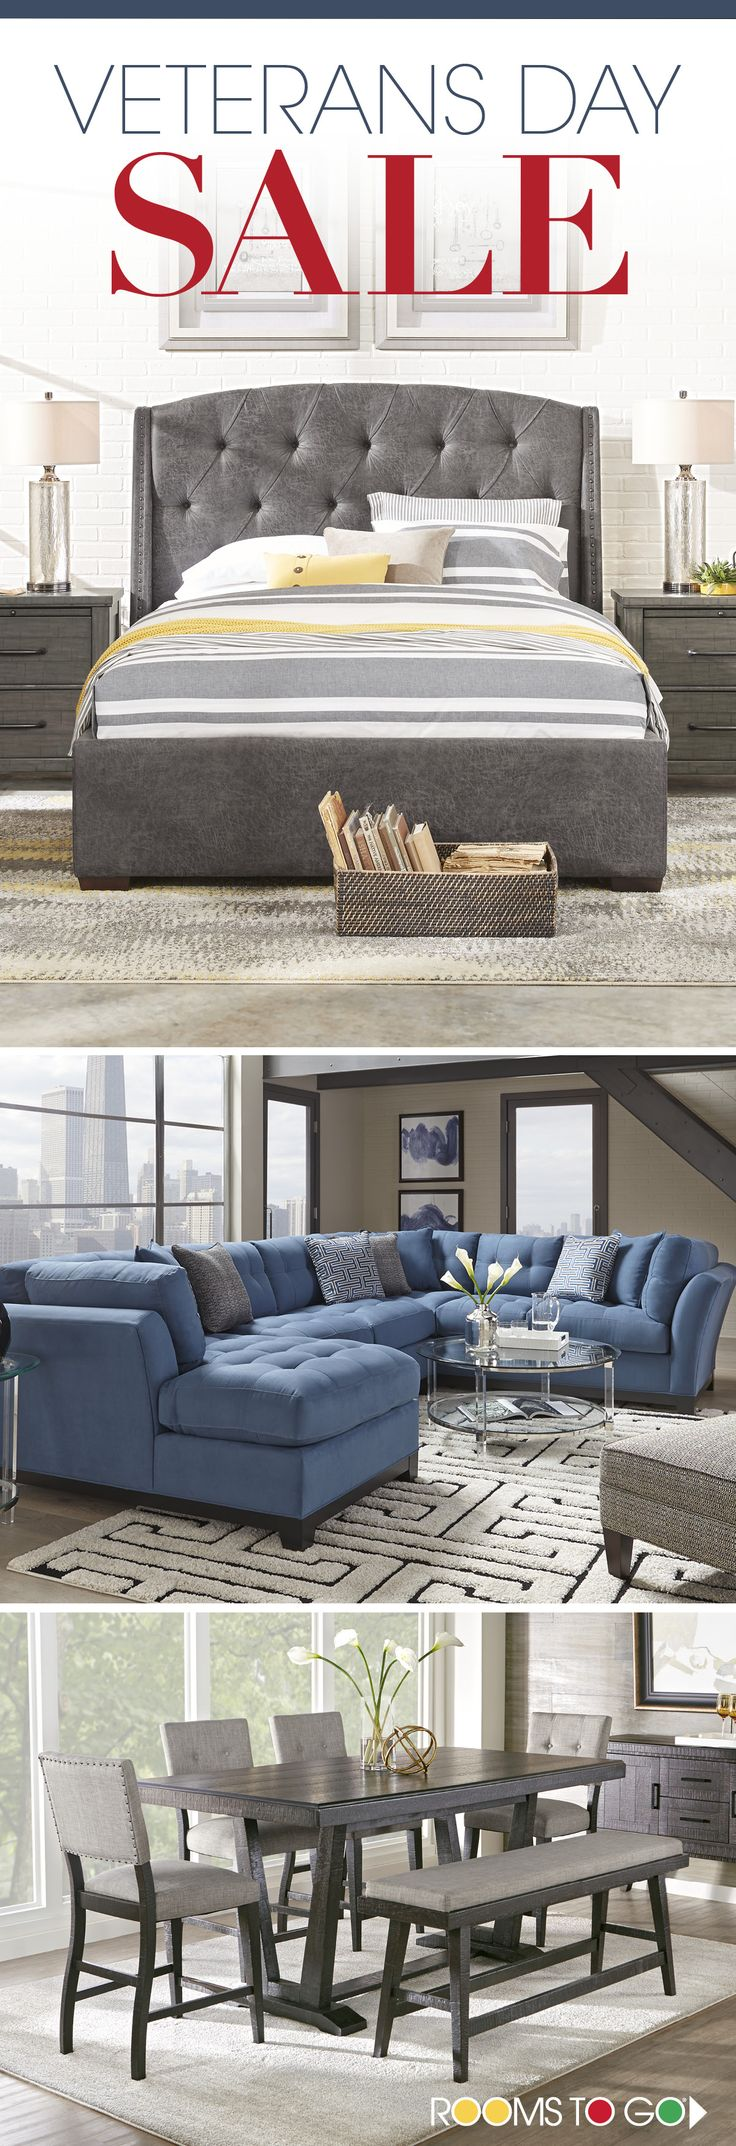 198 Best Lovely Living Spaces Images On Pinterest